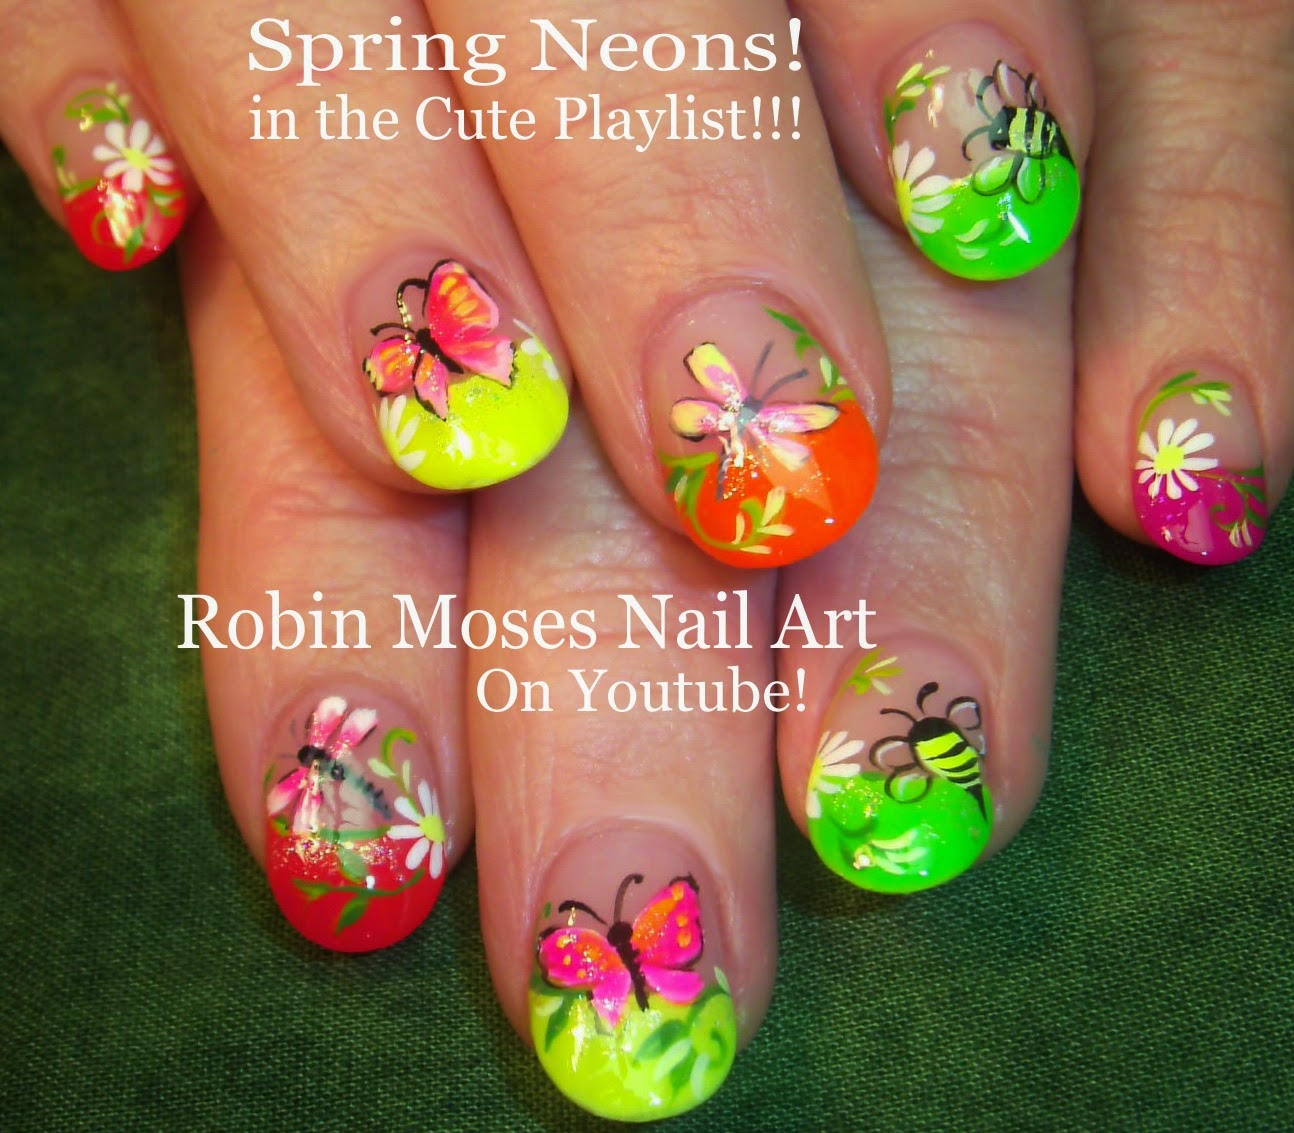 Robin Moses Nail Art Designs: Robin Moses Nail Art: March 2015